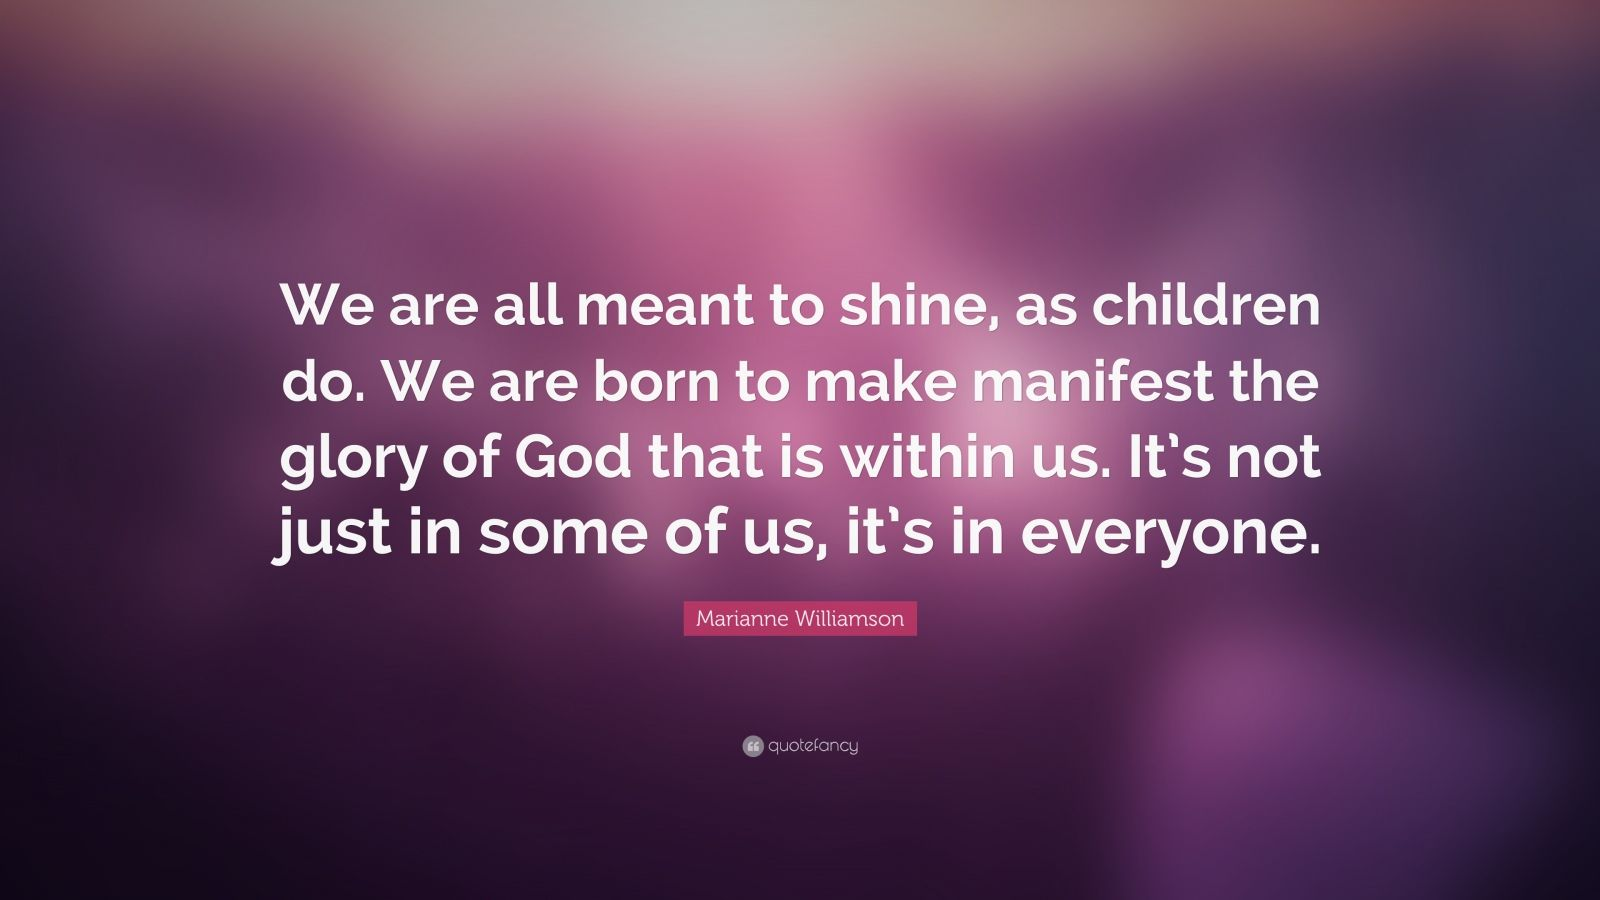 "Marianne Williamson Quote: ""We are all meant to shine, as children do. We are born to make manifest the glory of God that is within us. It's not just in some of us, it's in everyone."""